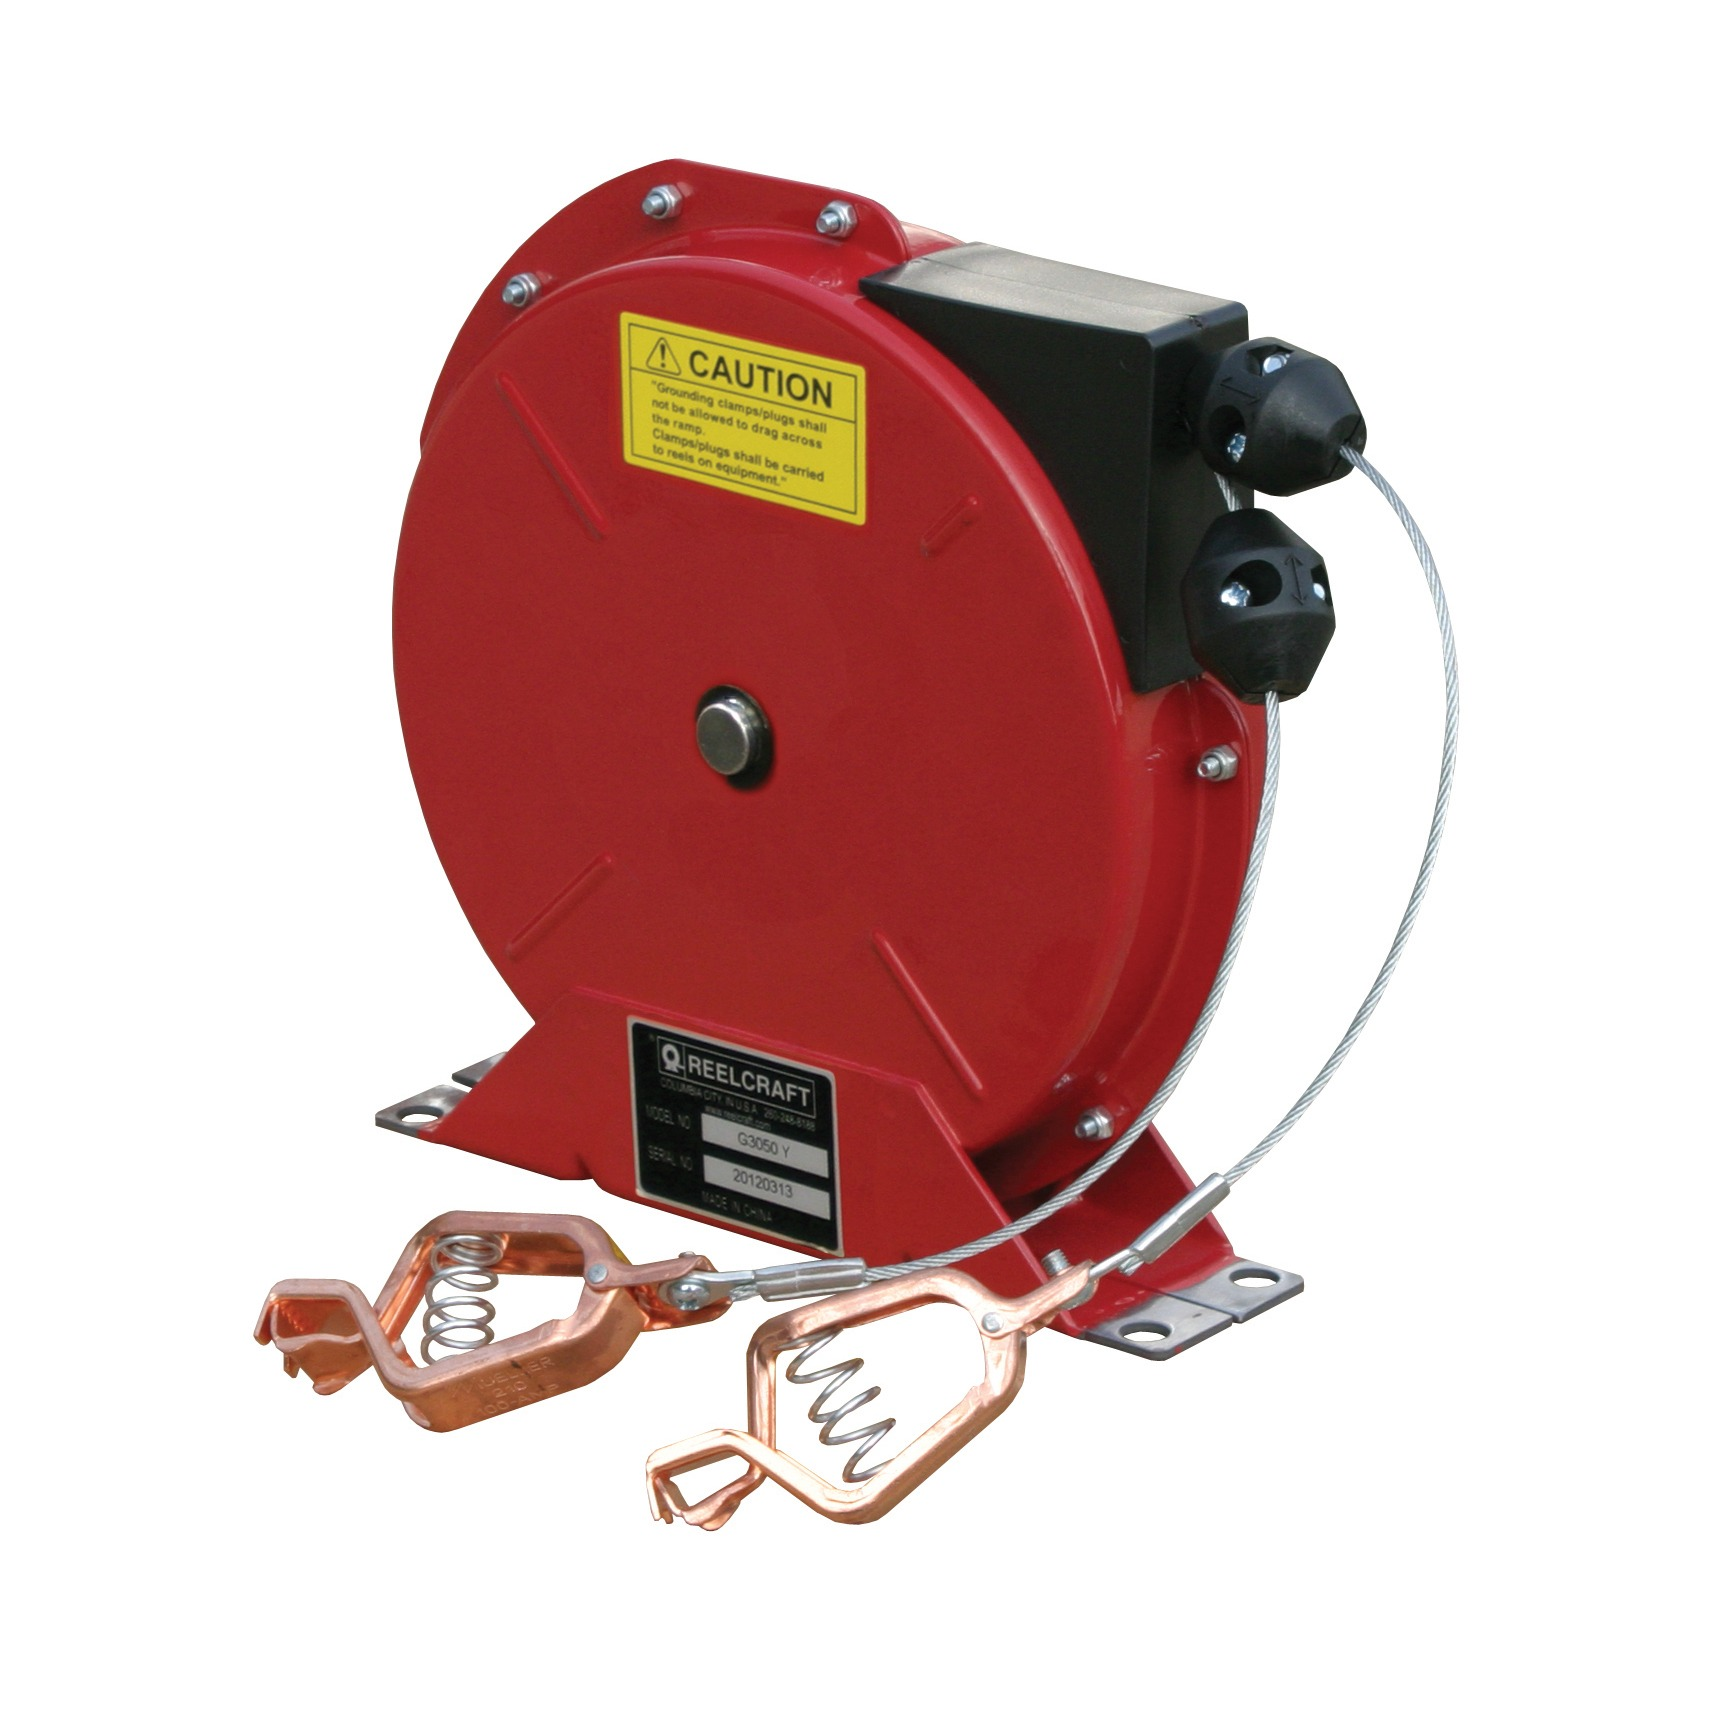 G 3050 Y - Heavy Duty Spring Retractable Grounding Reel - Hose, Cord and  Cable Reels - Reelcraft